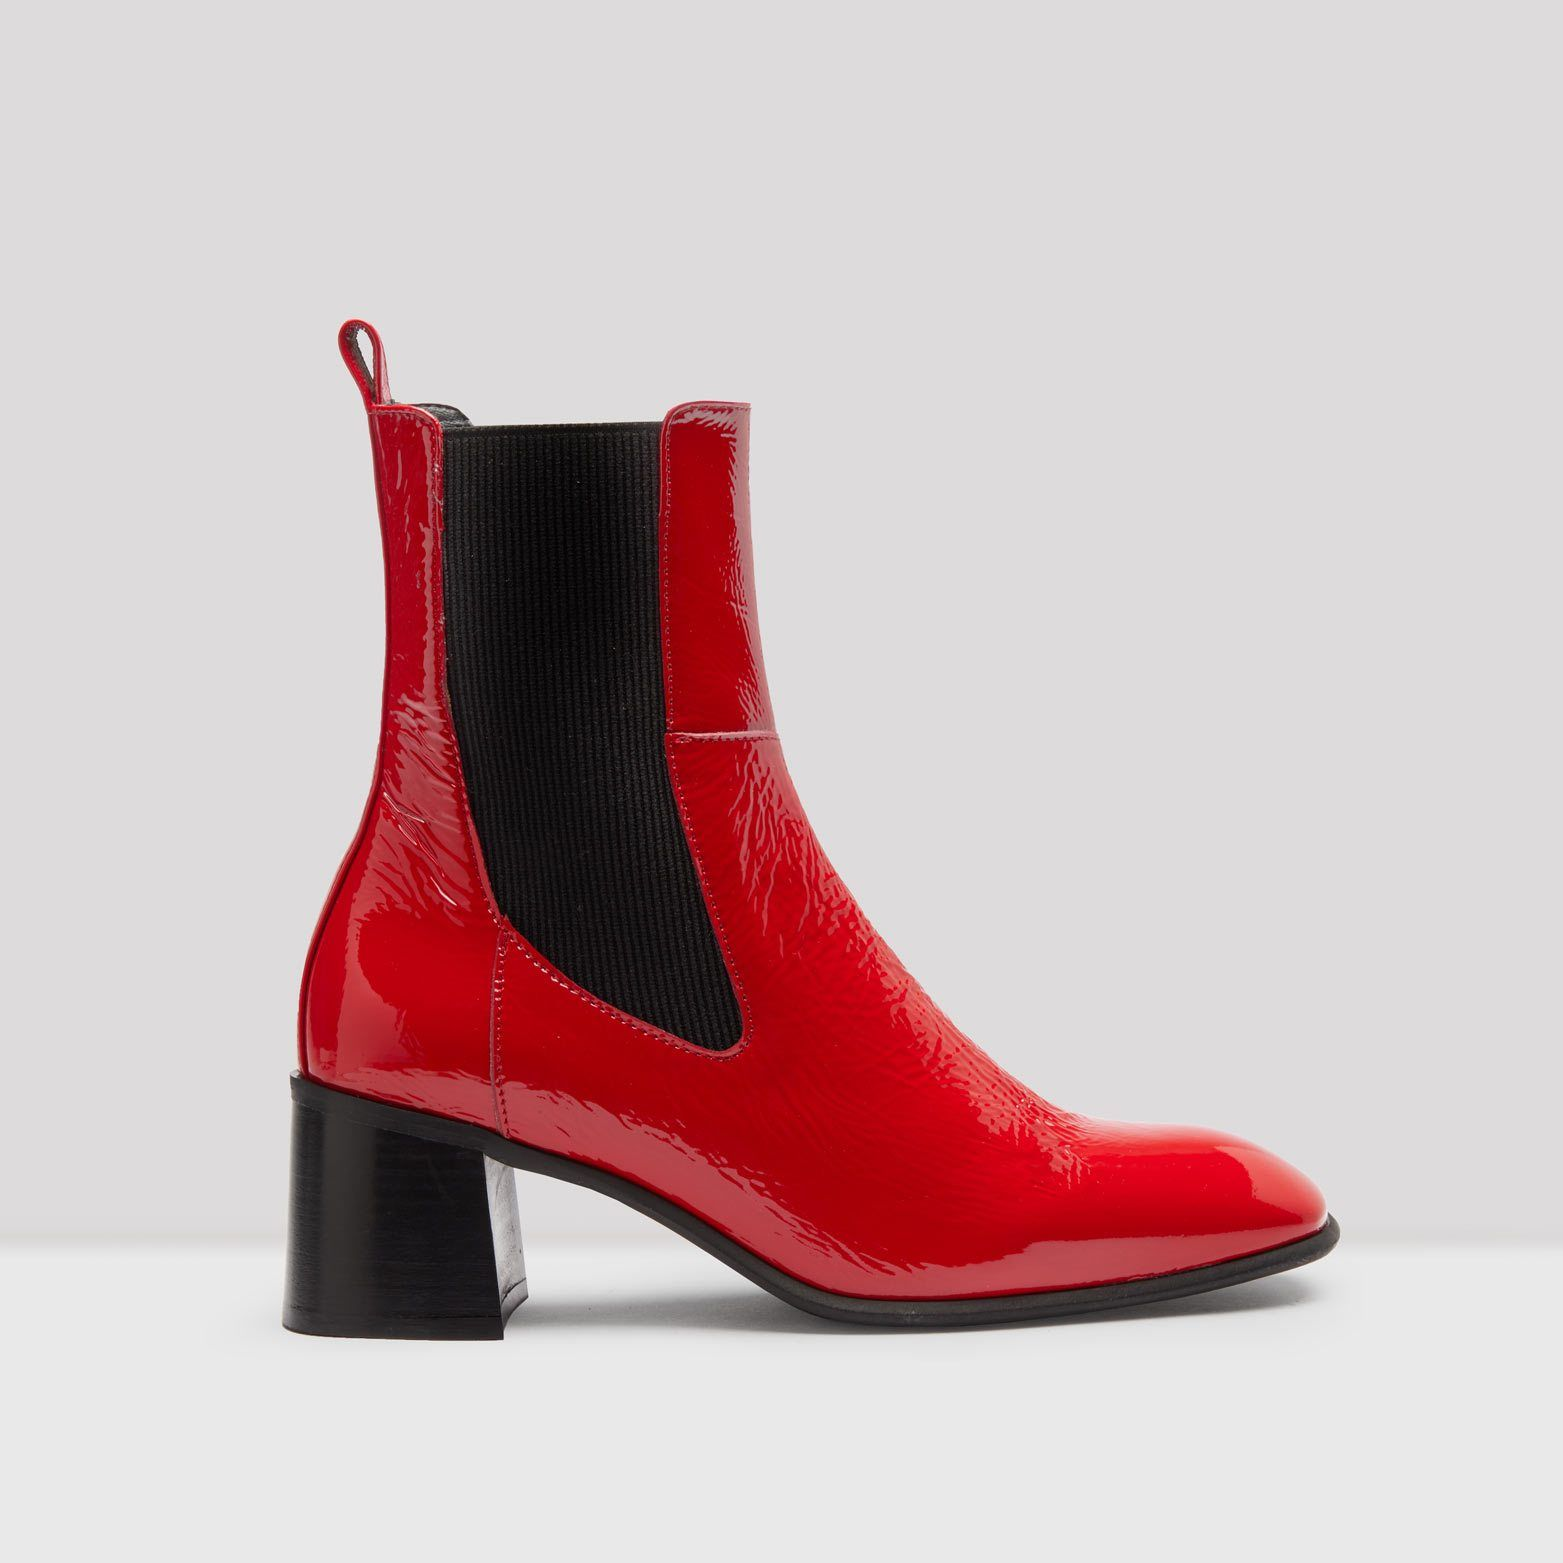 a7658df15 Tea Red Patent Leather Boots | Women's Shoes | Boots, Patent leather ...